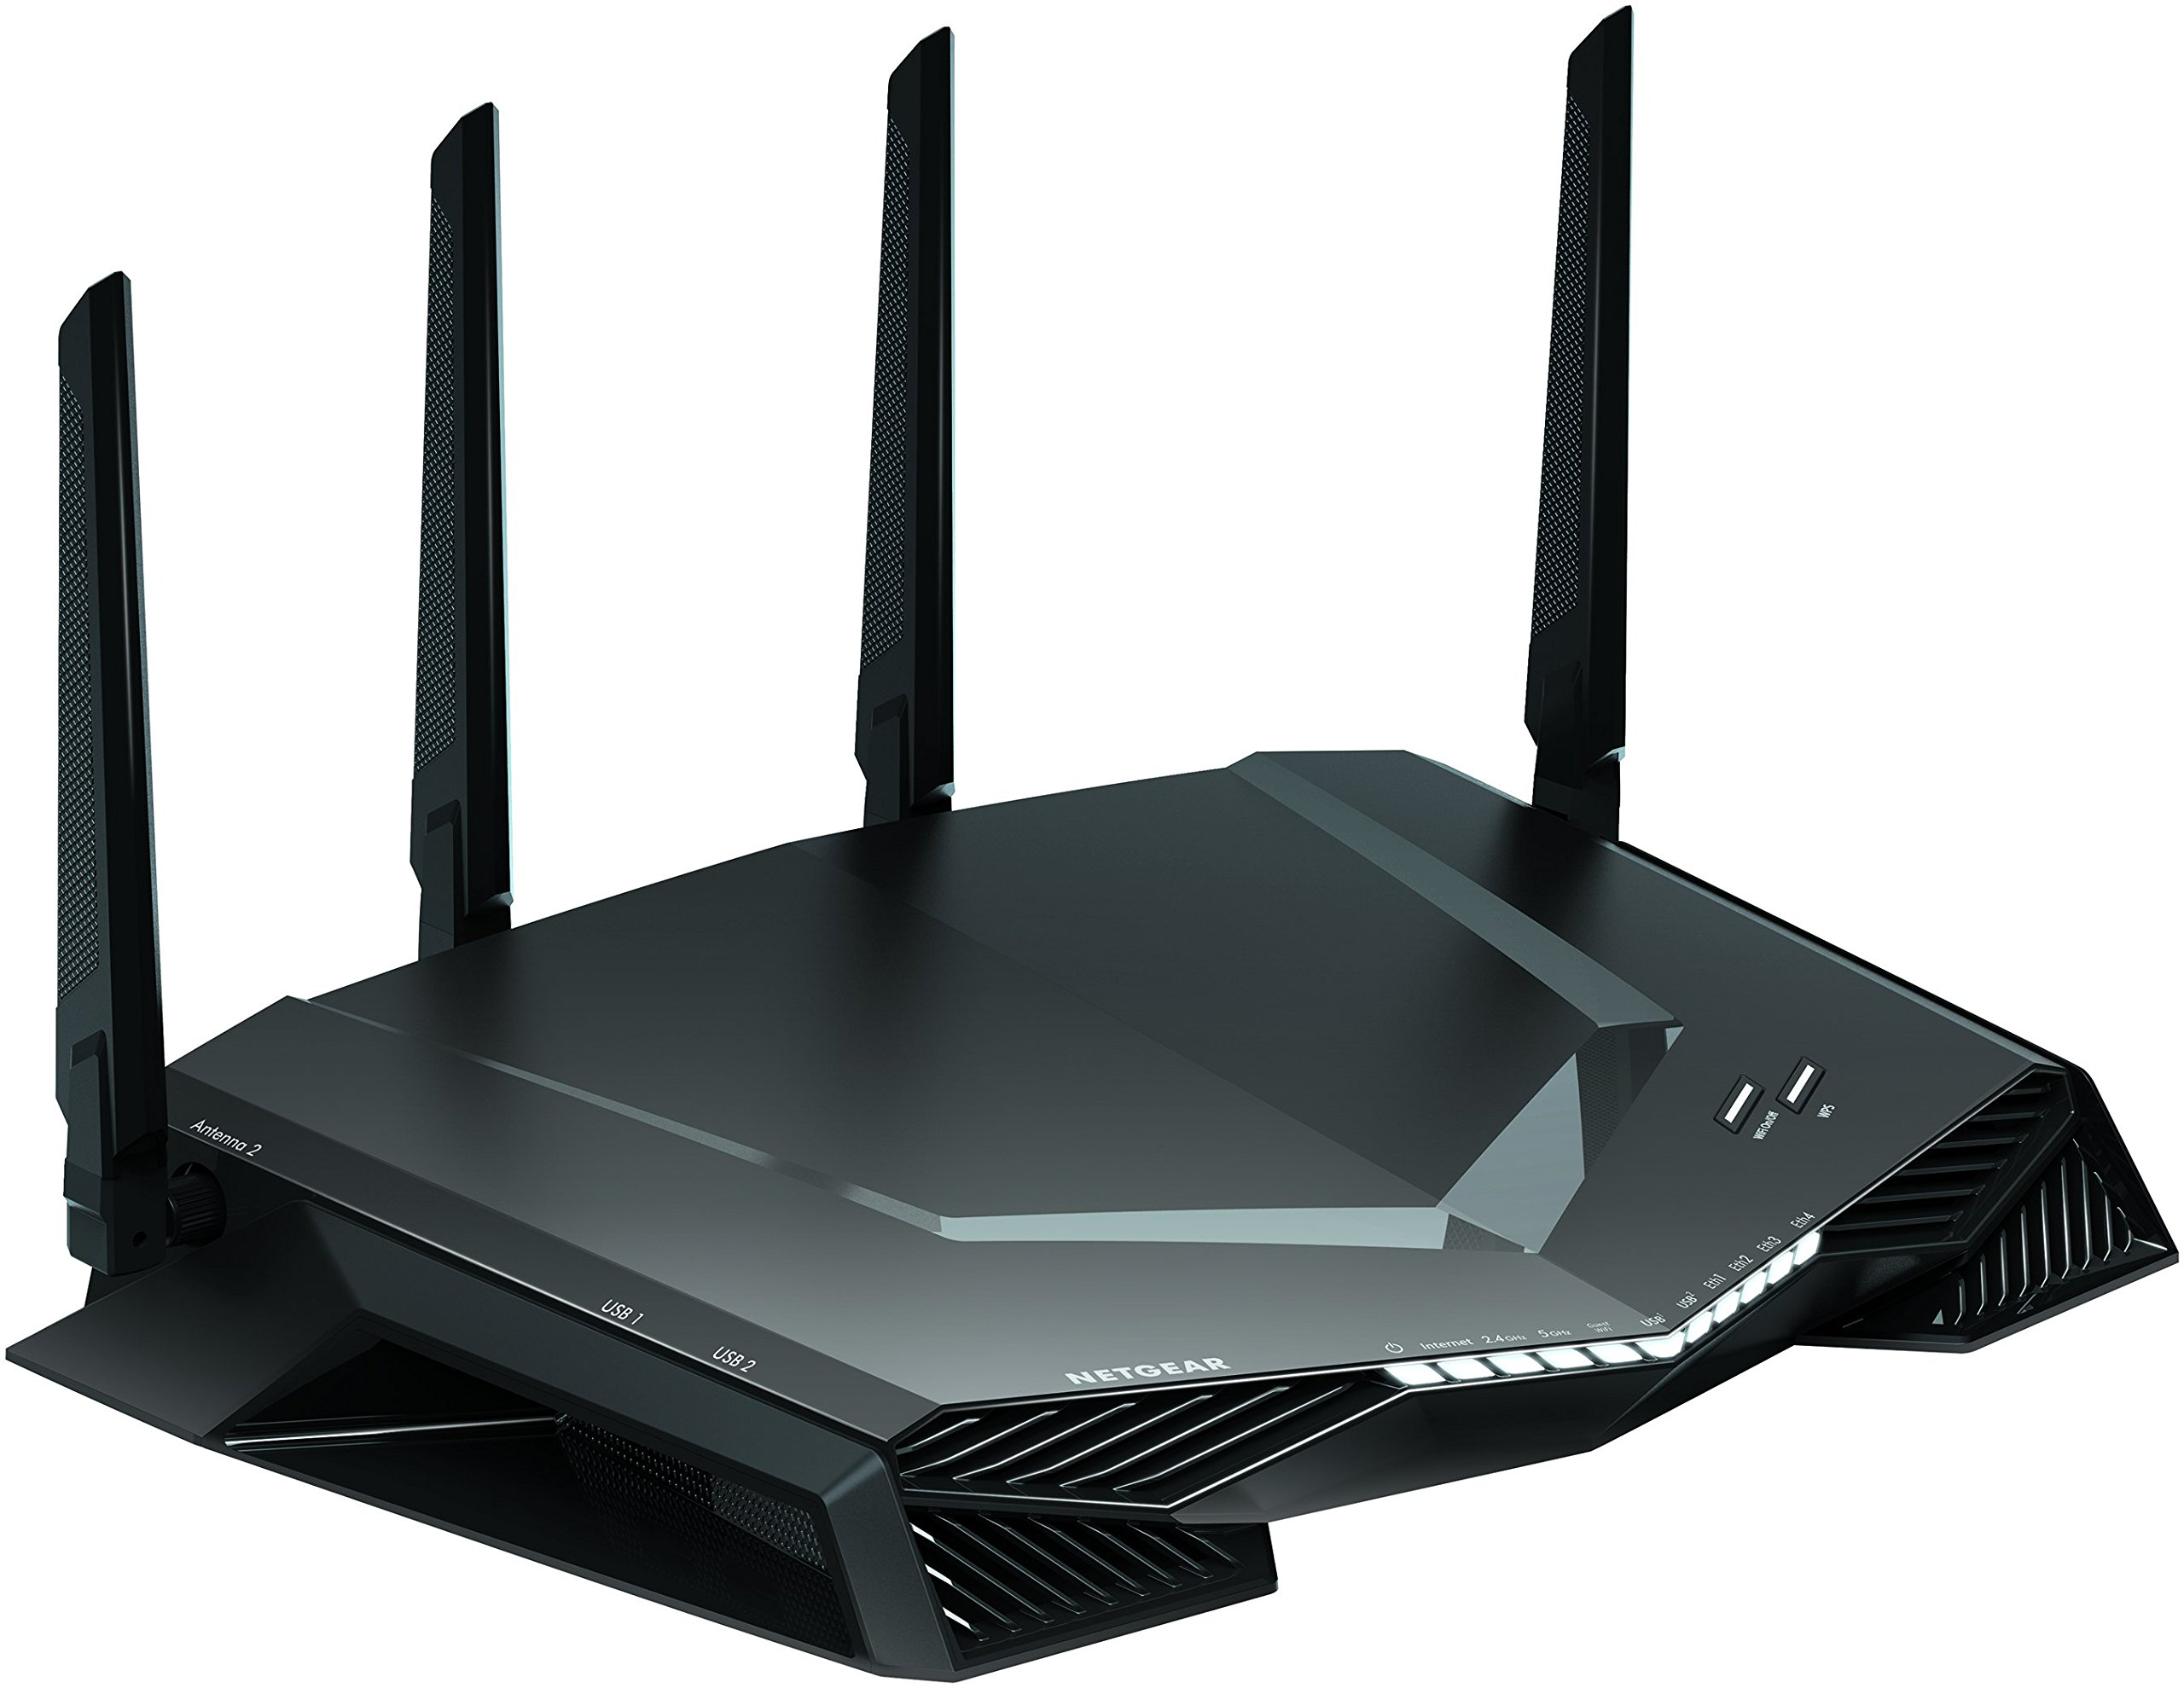 NETGEAR Nighthawk Pro Gaming WiFi Router- Powered by Netduma DumaOS AC2600 Dual band wireless Gigabit Ethernet speeds- Control your ping and latency- Works with Xbox, PlayStation, PC and more, (XR500)